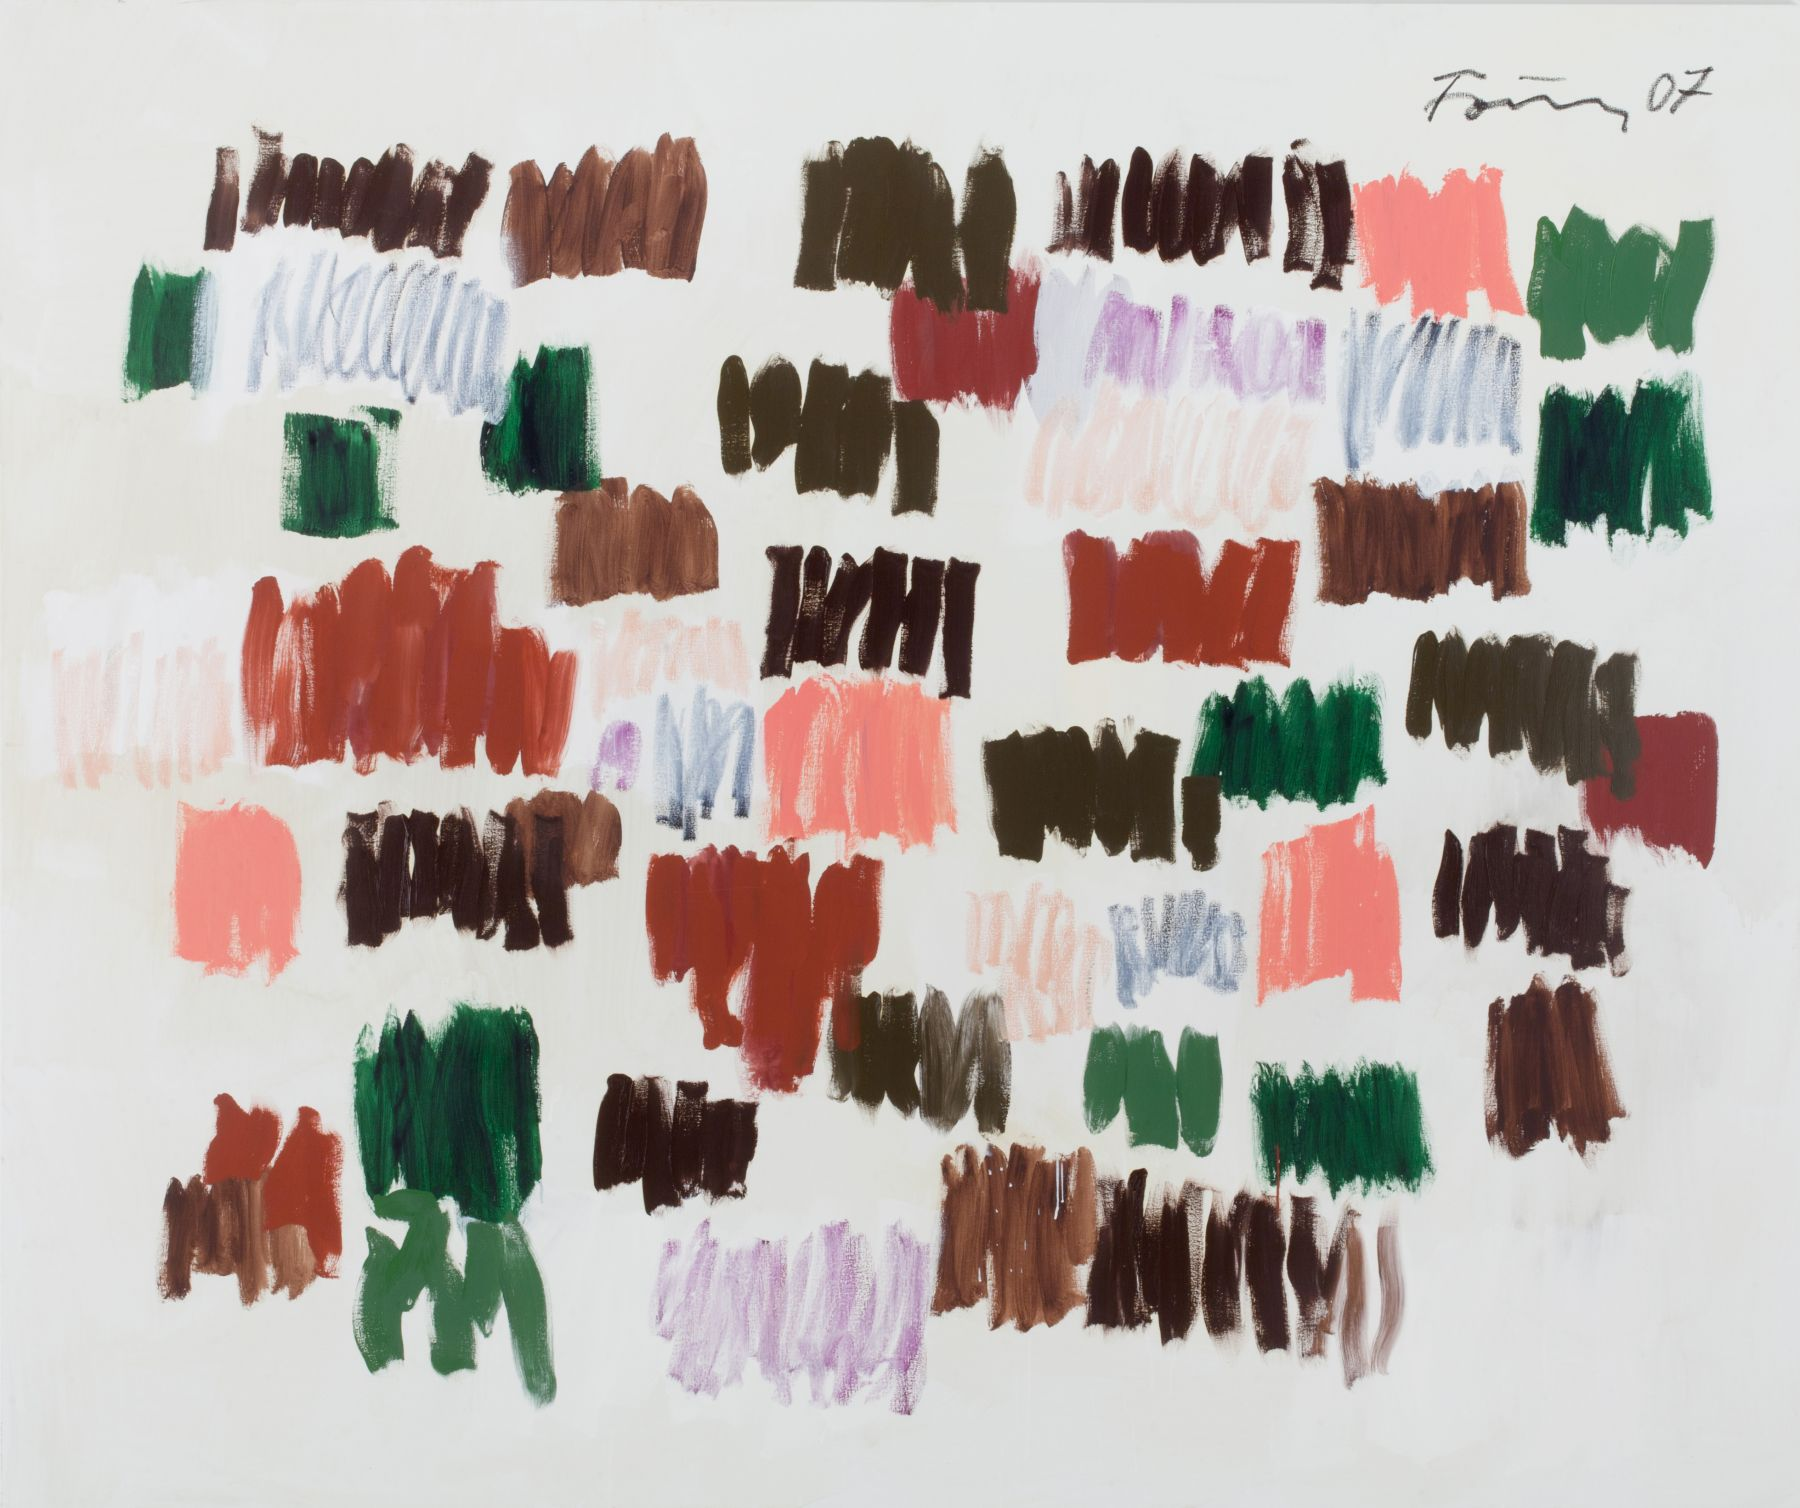 Gunther Forg, Untitled, 2007, Acrylic and oil on canvas, 78 3/4 x 94 1/2 inches